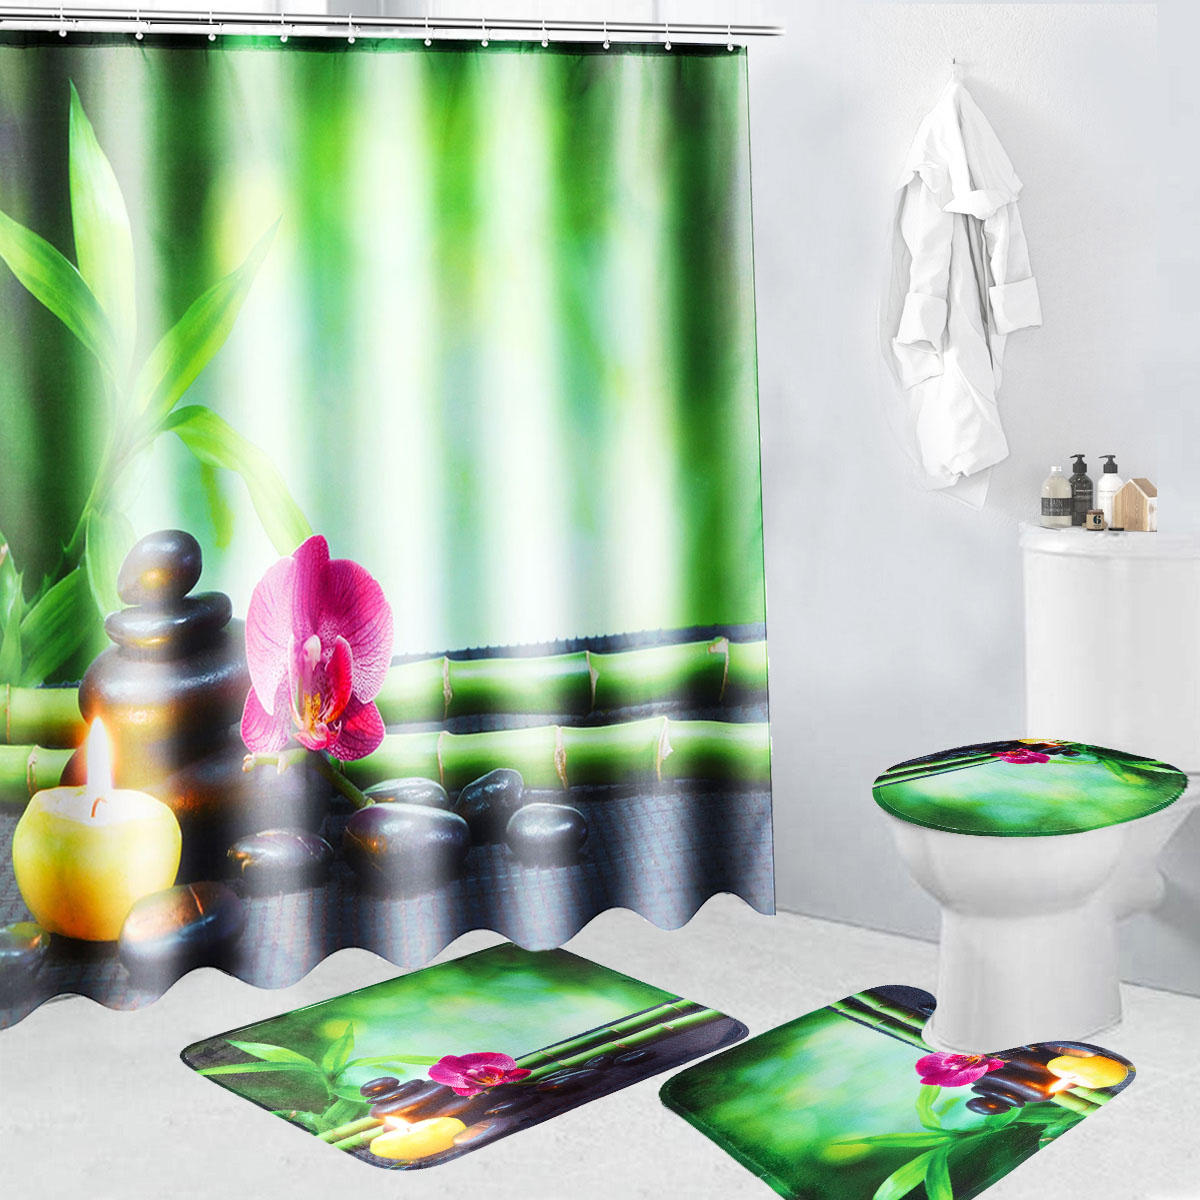 Bathroom Shower Curtain 4pcs 180x180cm Bamboo Pebbles Bathroom Shower Curtain With Hooks Toliet Cover Mat